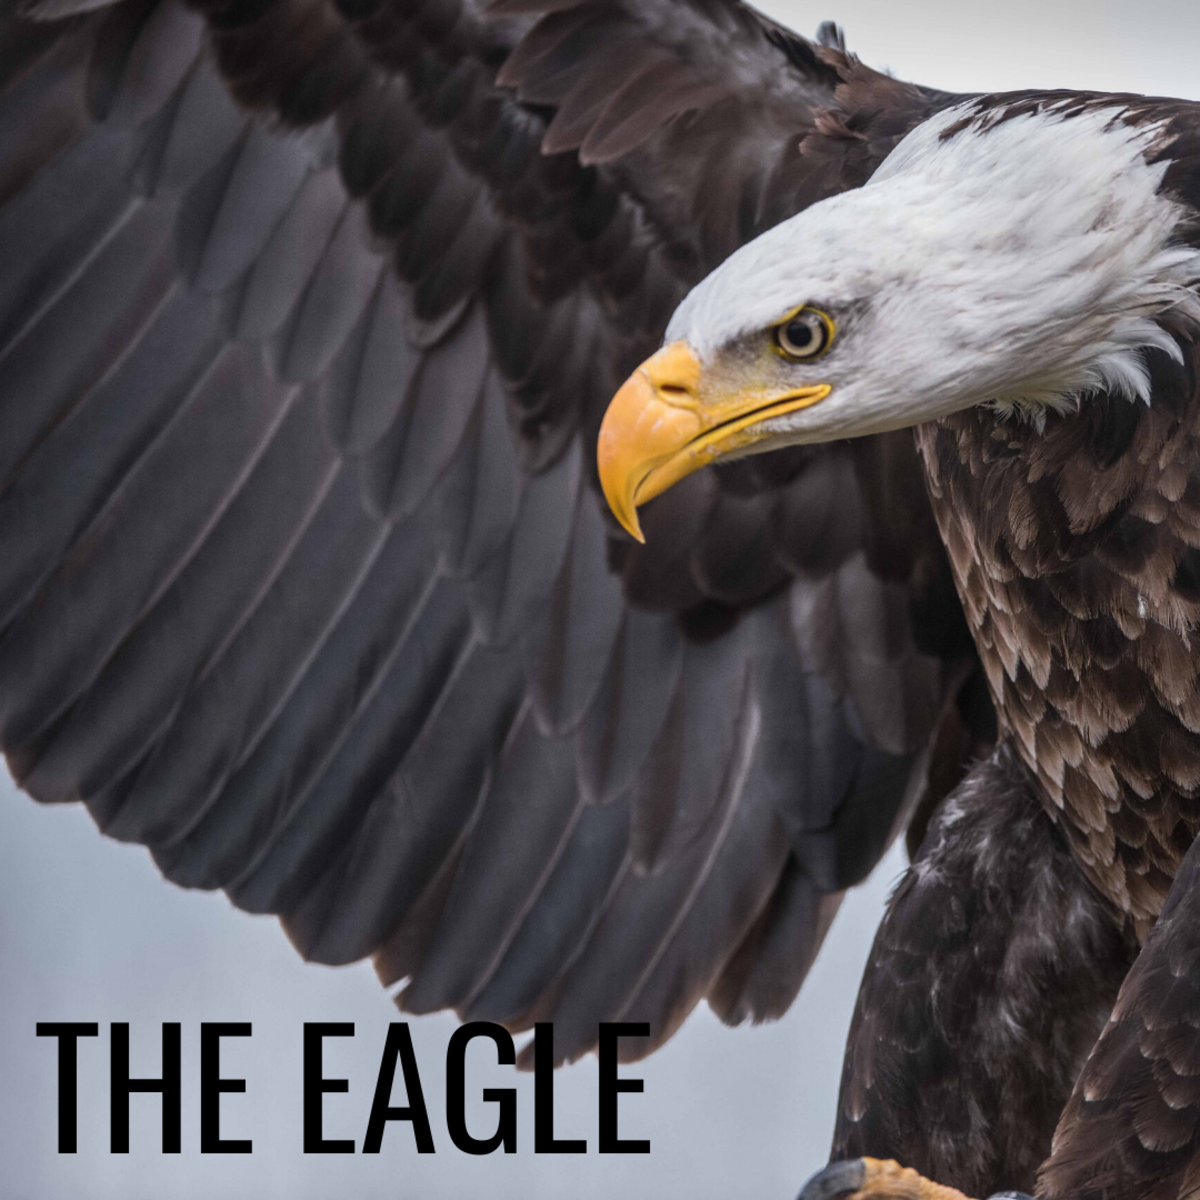 Eagles symbolize freedom, longevity, and strength.